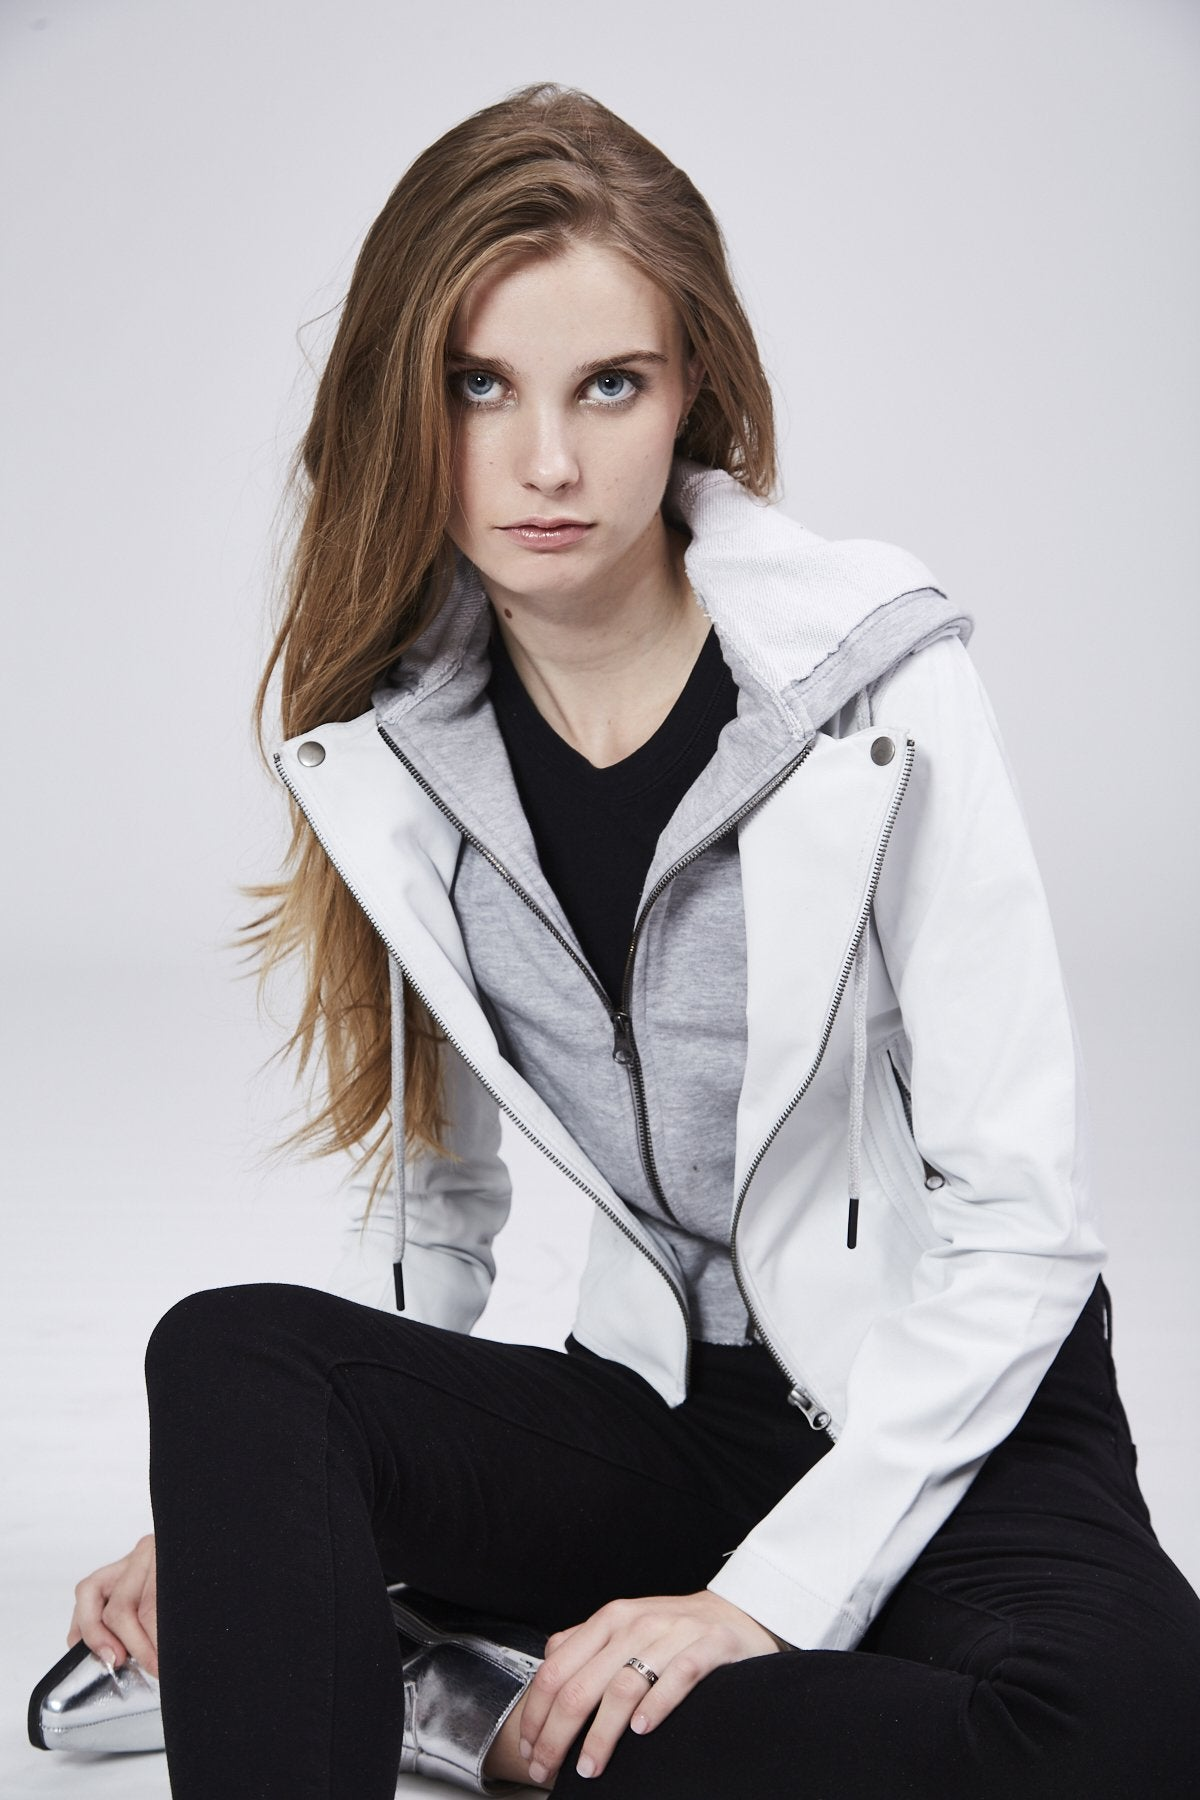 Molly Burnished Leather Jacket in White